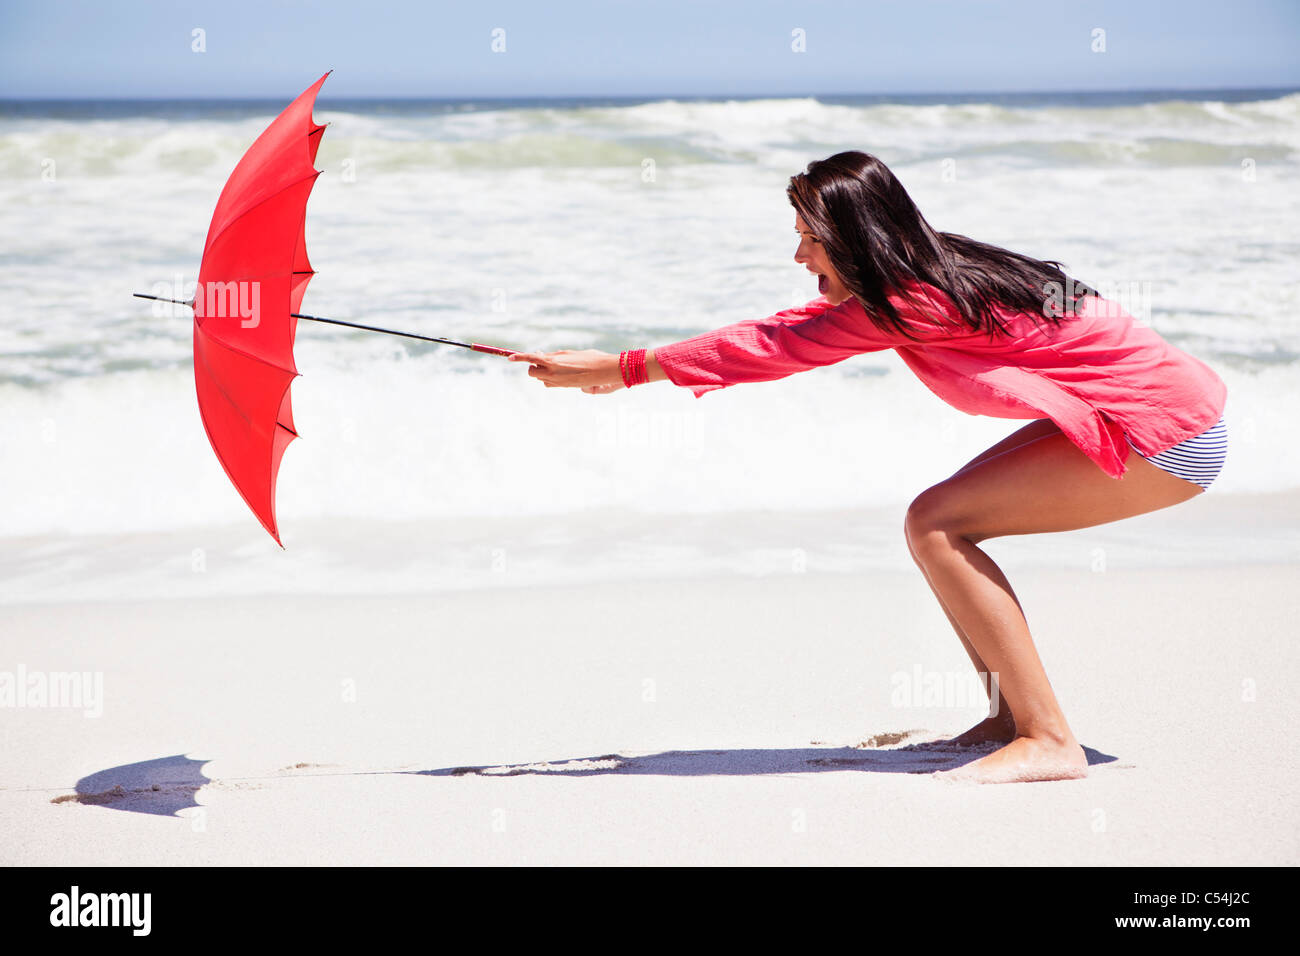 Woman trying to hold an umbrella in strong wind on the beach - Stock Image